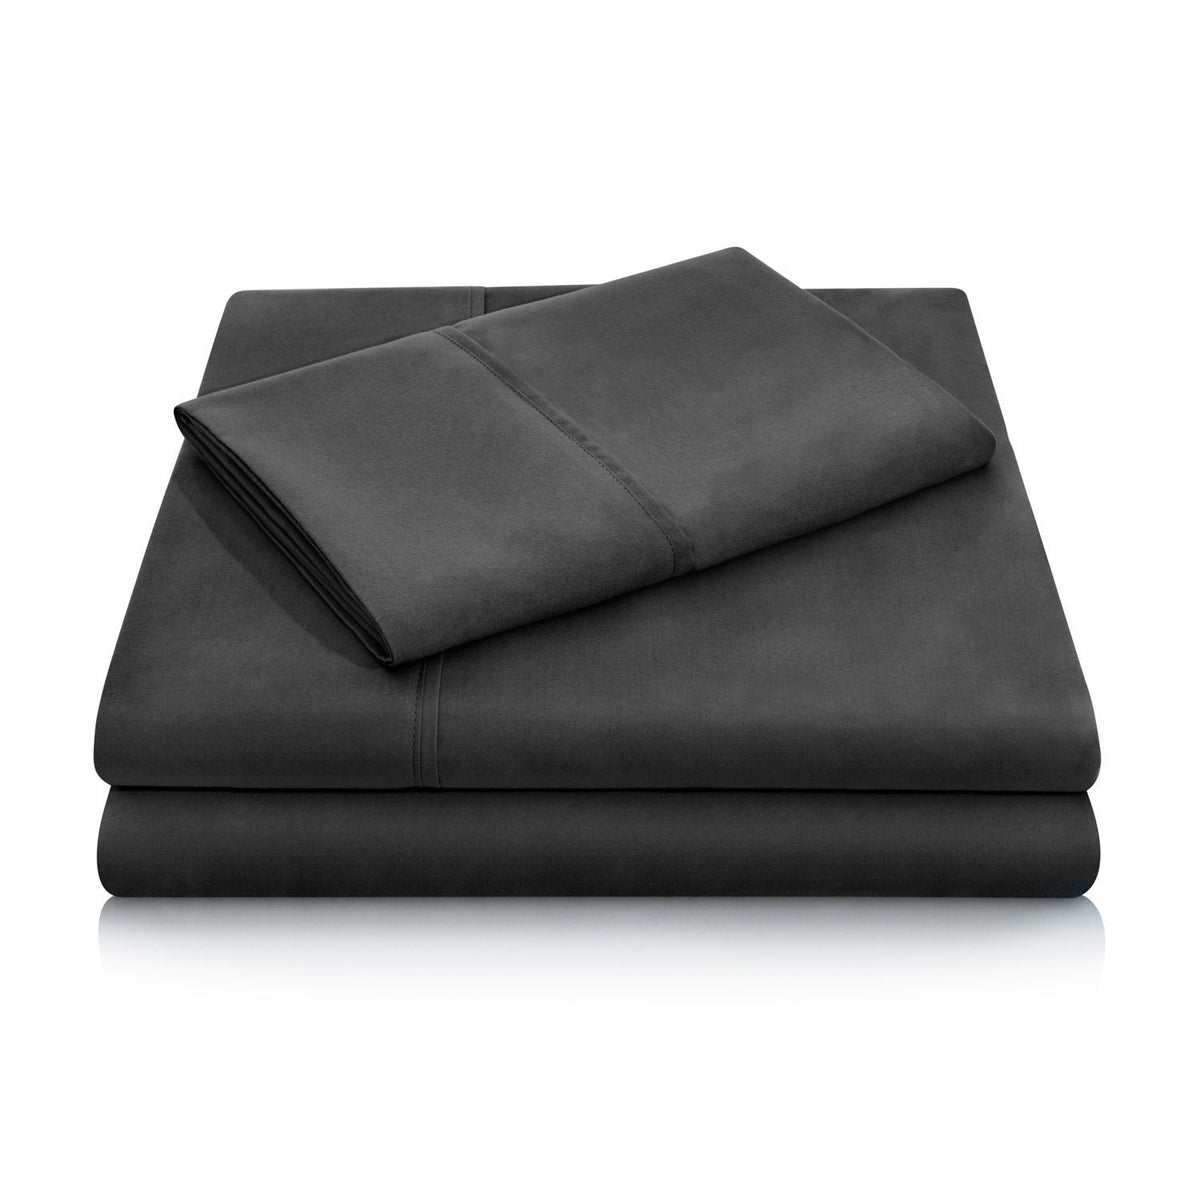 WOVEN Brushed Microfiber Sheet Set Sheet Set Malouf Twin Black